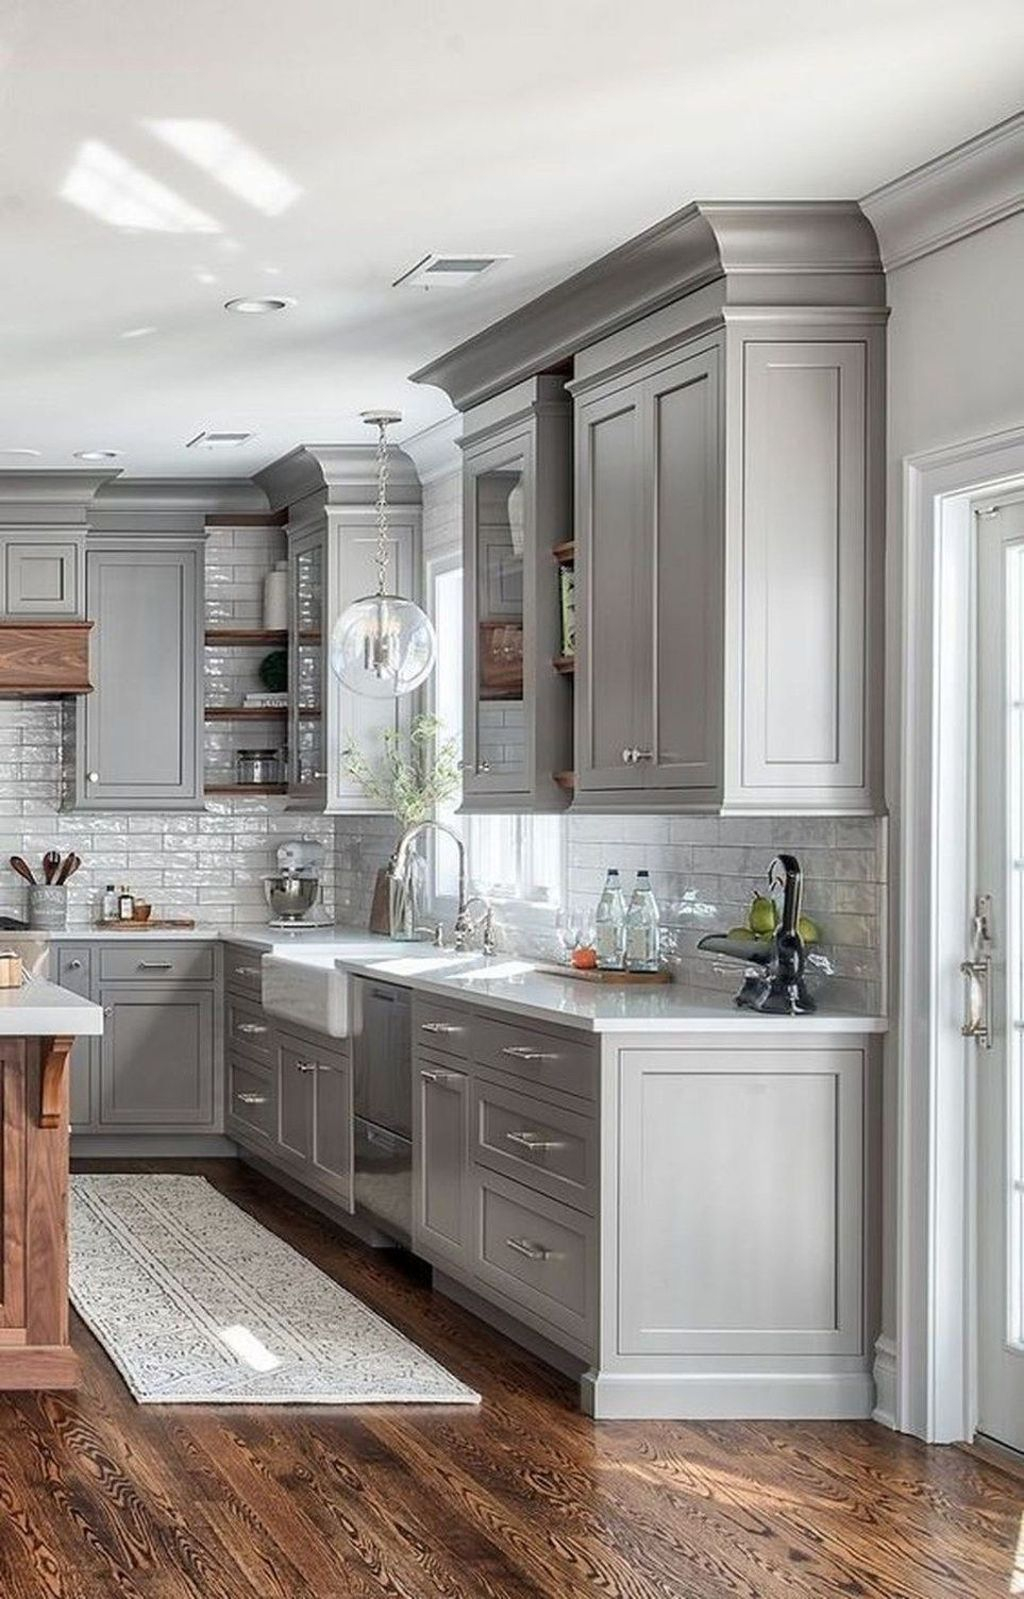 Superb Kitchen Design Ideas That You Can Try 23